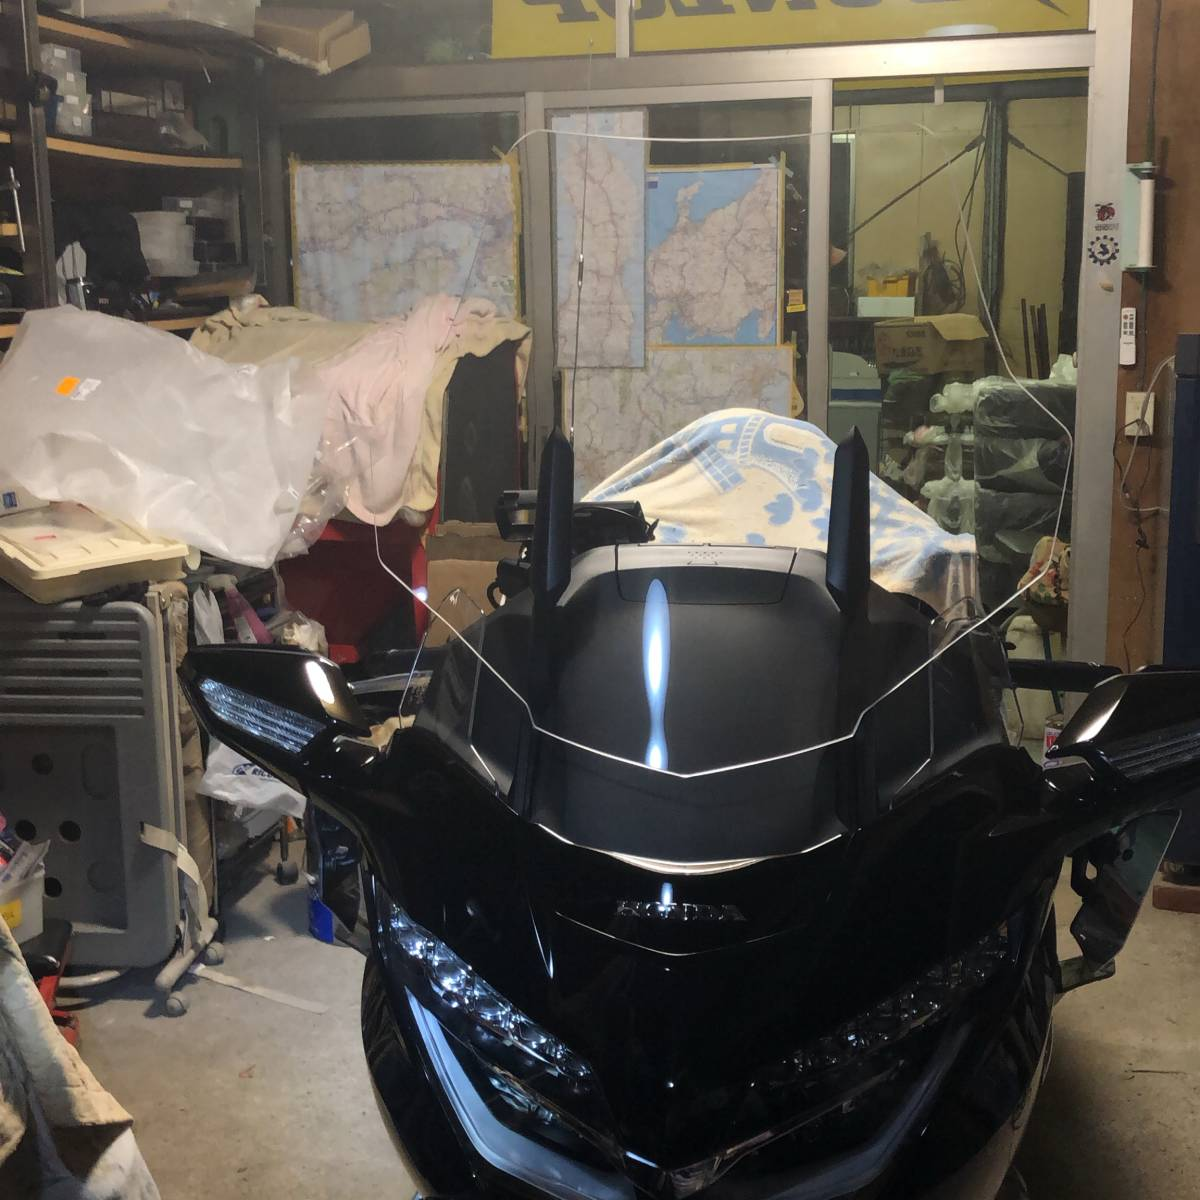 HONDA GL1800 GOLDWING ( 2018~ 2019年式 )Puig TOURING SCREEN (CLEAR) made in SPAIN  プーチ ツーリング スクリーン [クリア]中古品